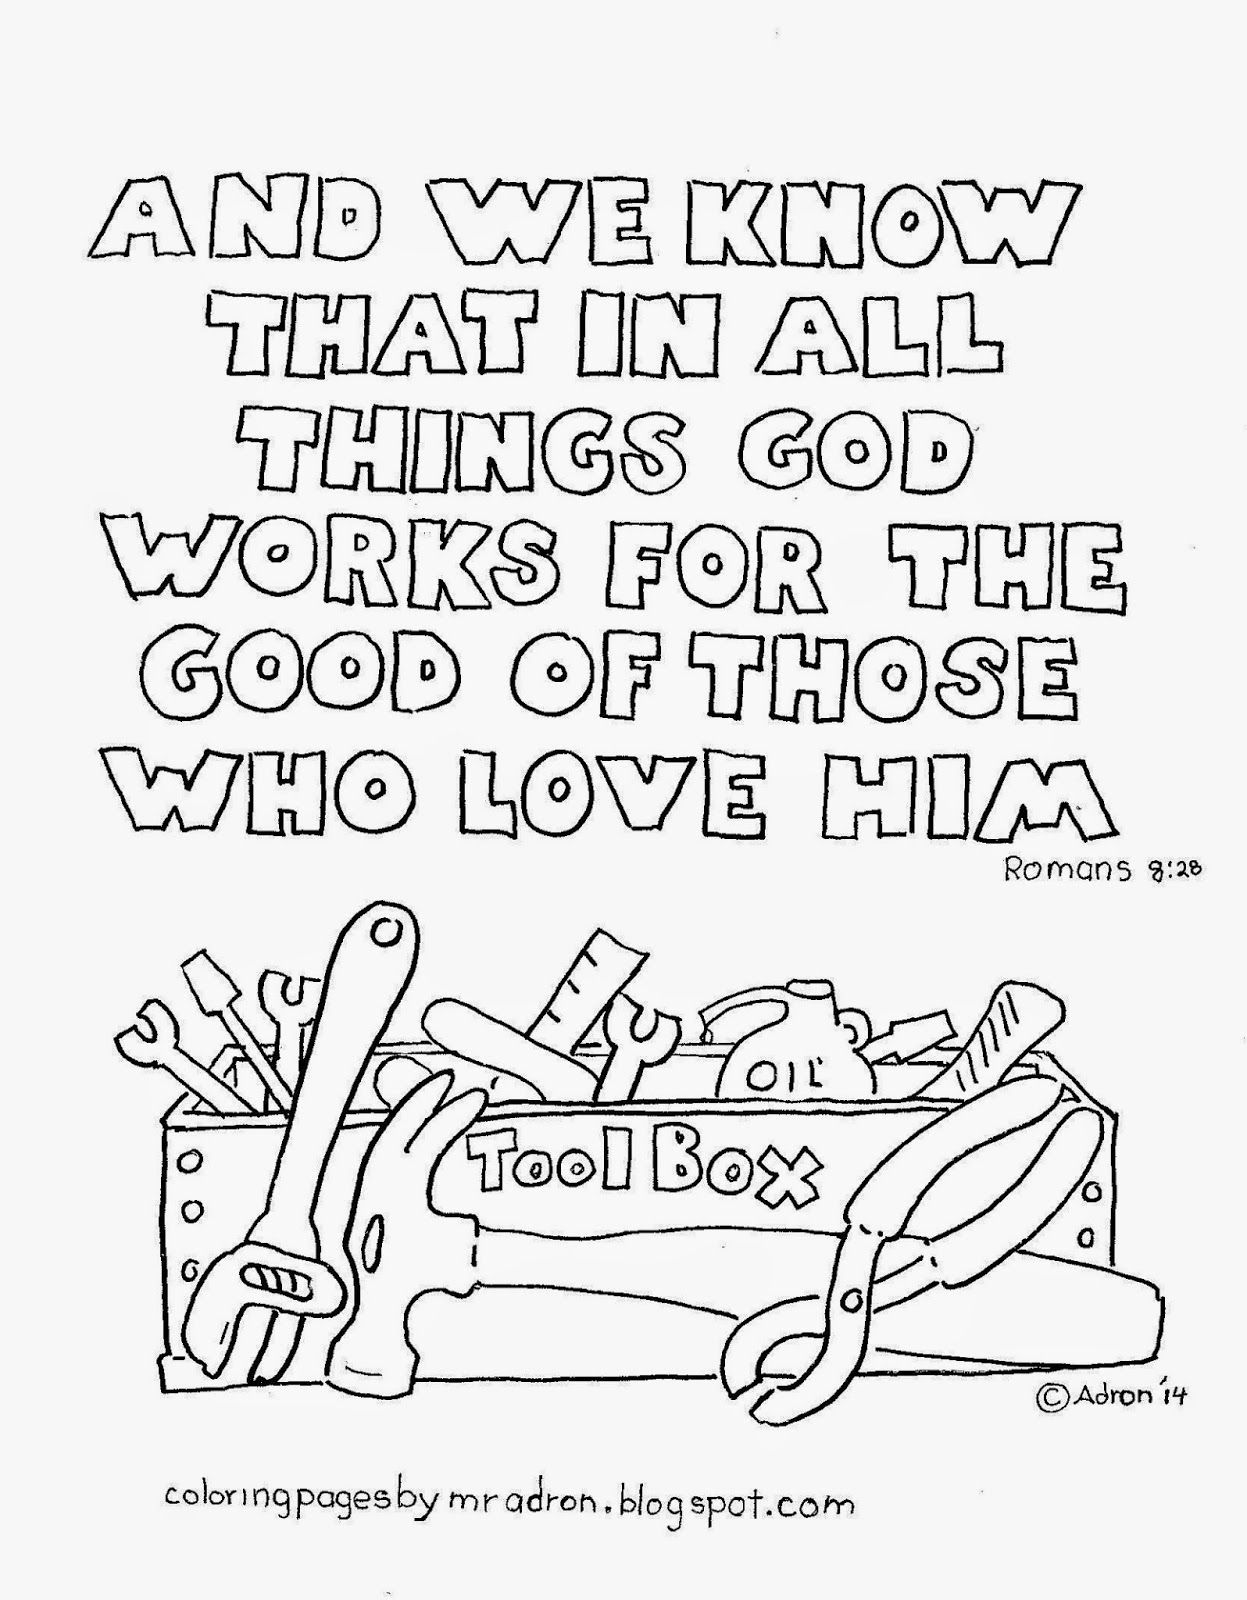 god works all things for good free coloring page see more at my